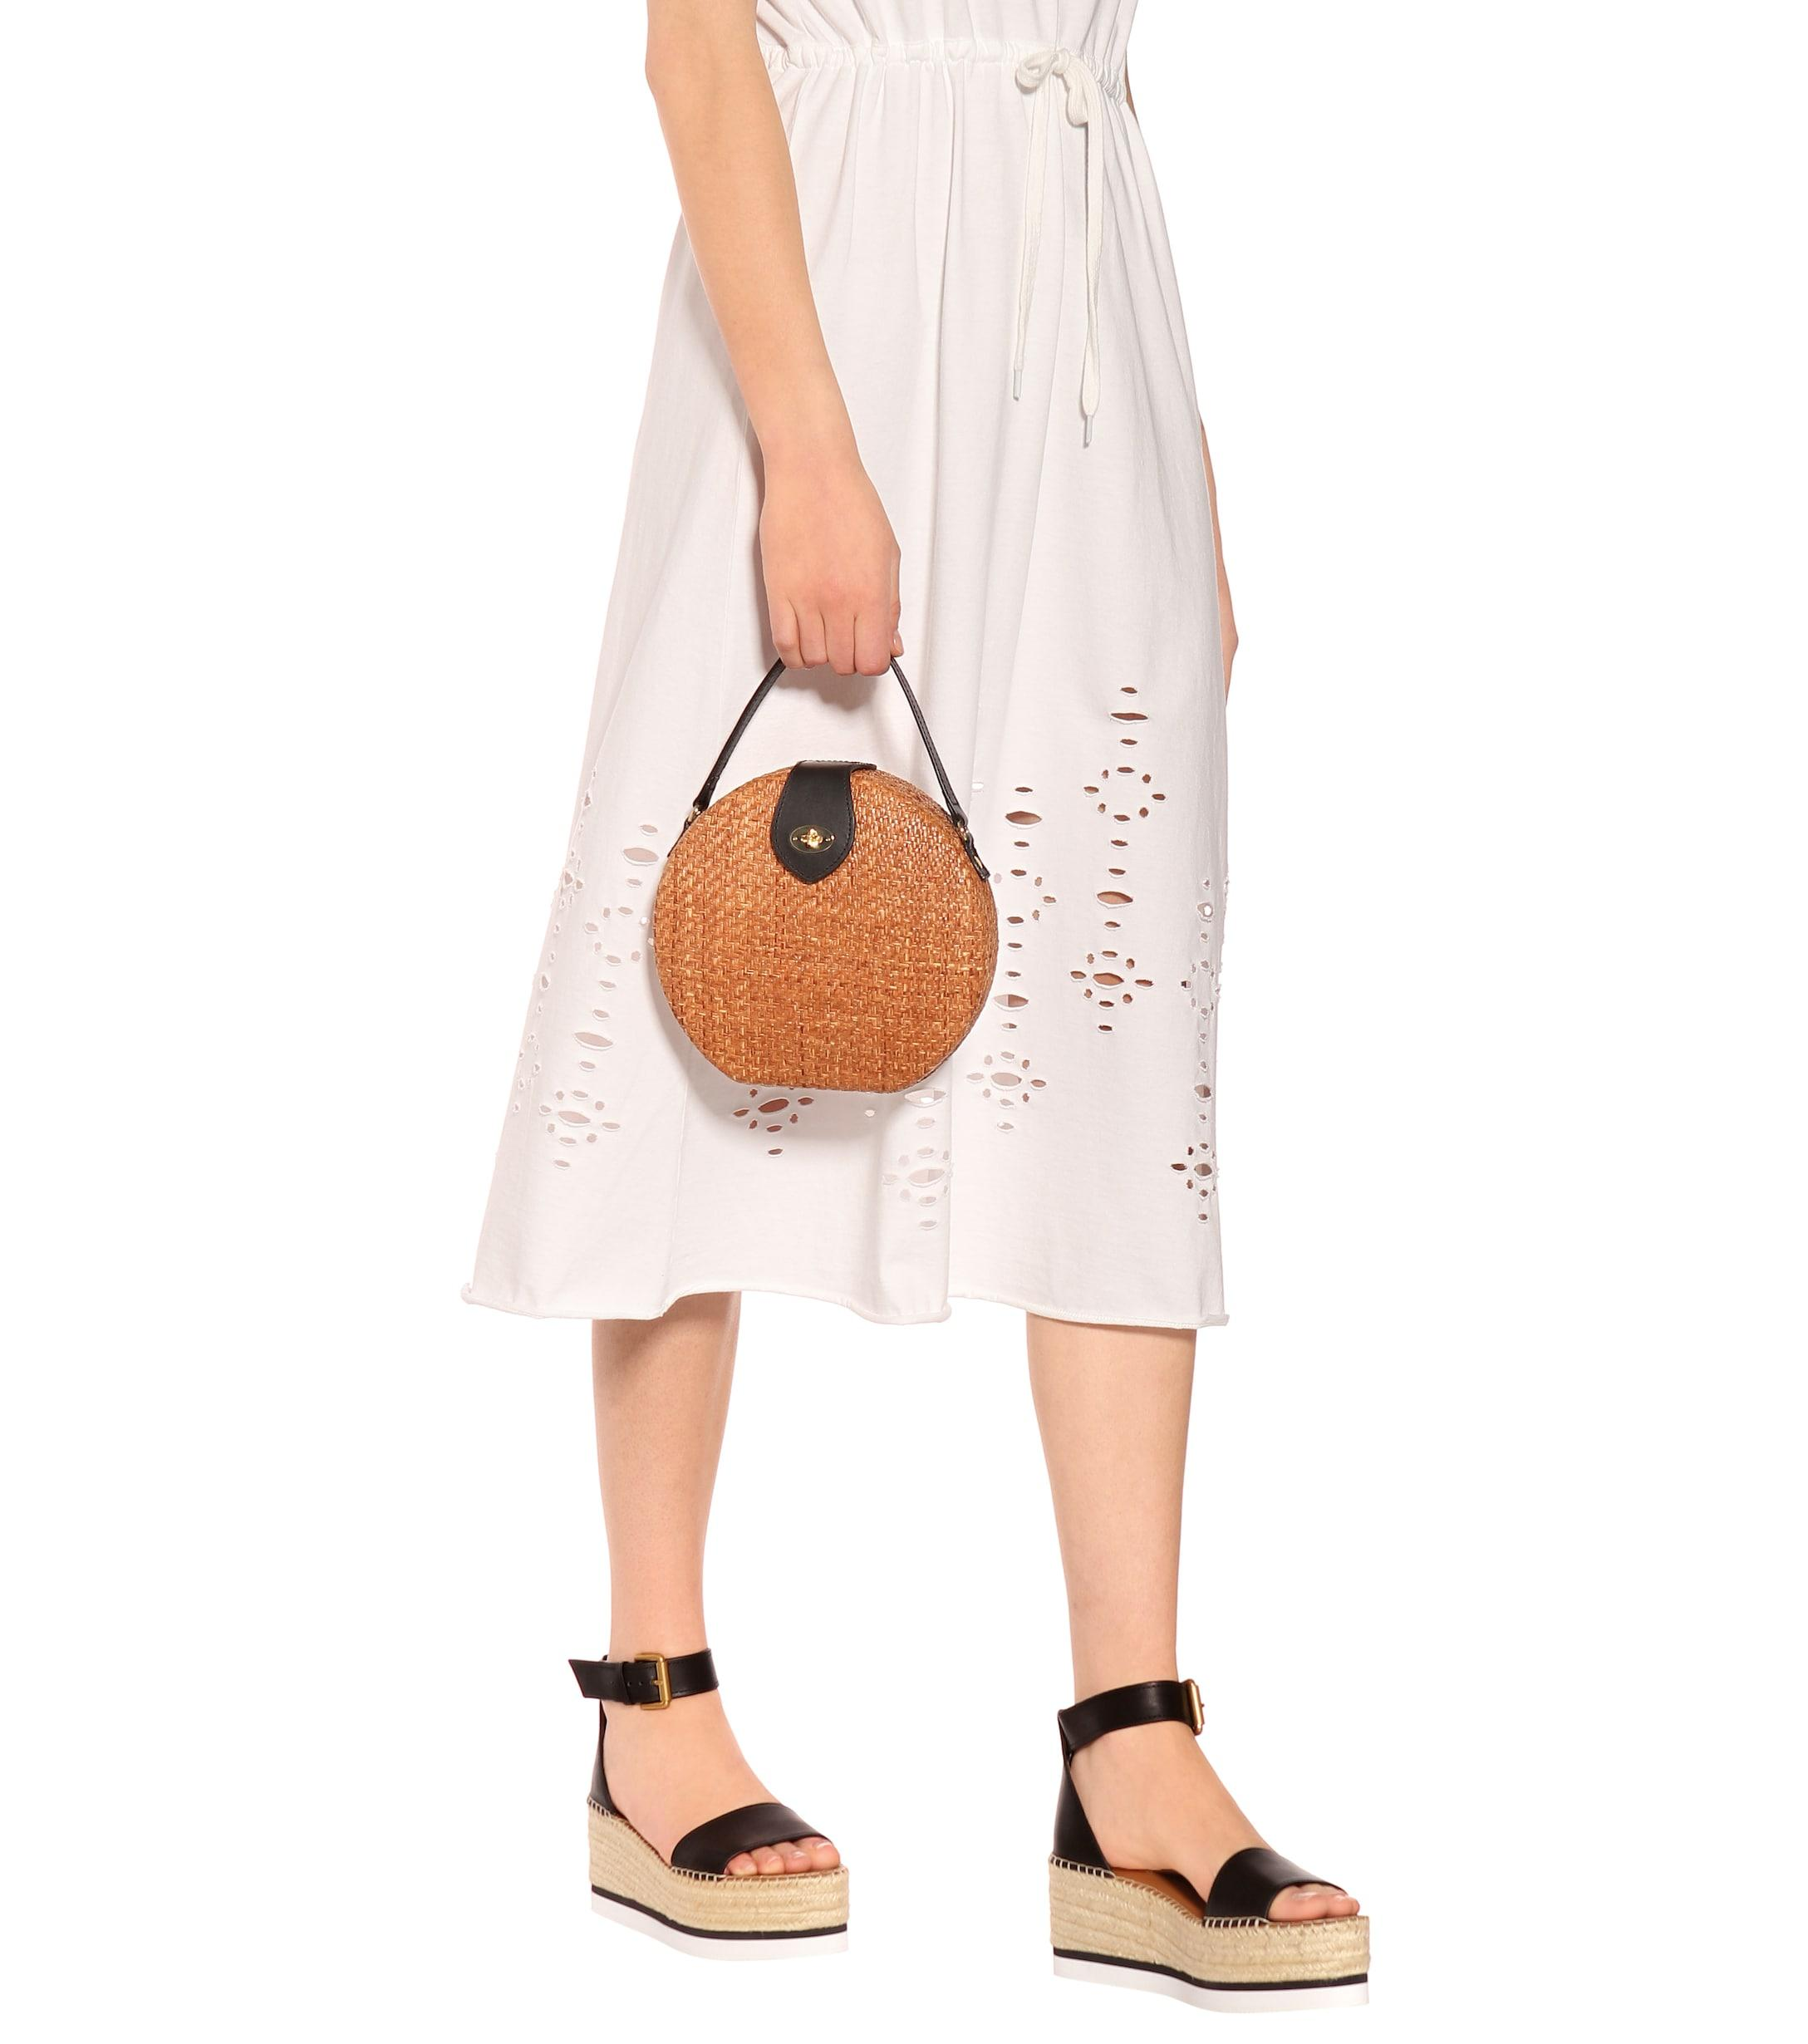 To Kayu Bag Mytheresa In – Wicker Exclusive Shoulder Lyst Brown 55qrxRg